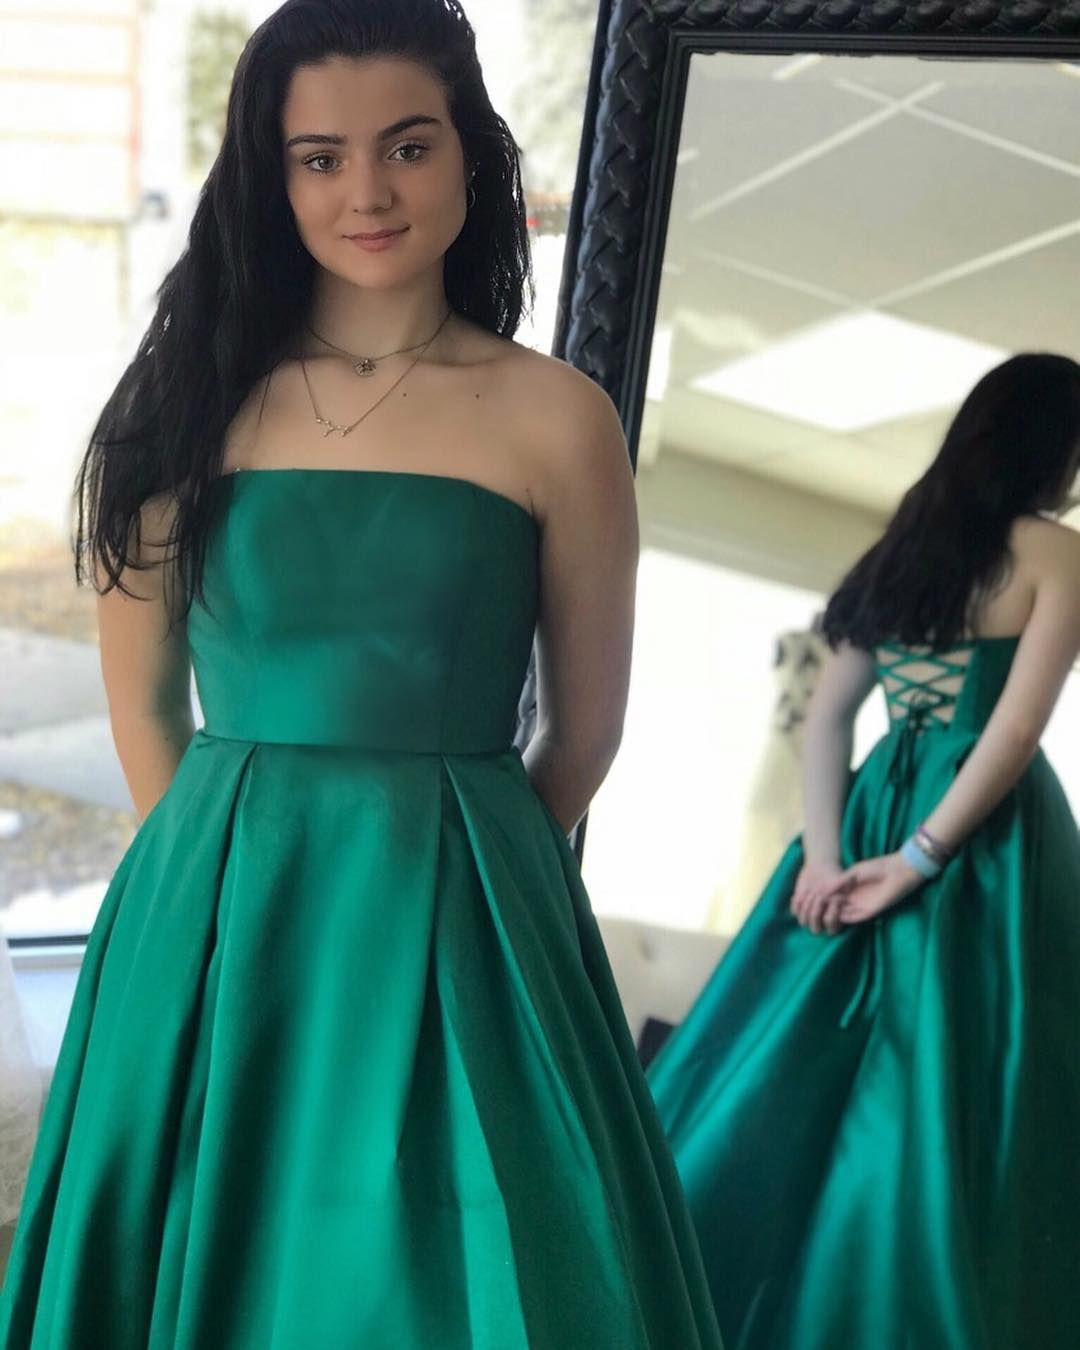 Simple Green Long Prom Dress With Lace Up Back From Dreamdressy In 2021 Dresses Long Prom Dress Lace Dress [ 1350 x 1080 Pixel ]